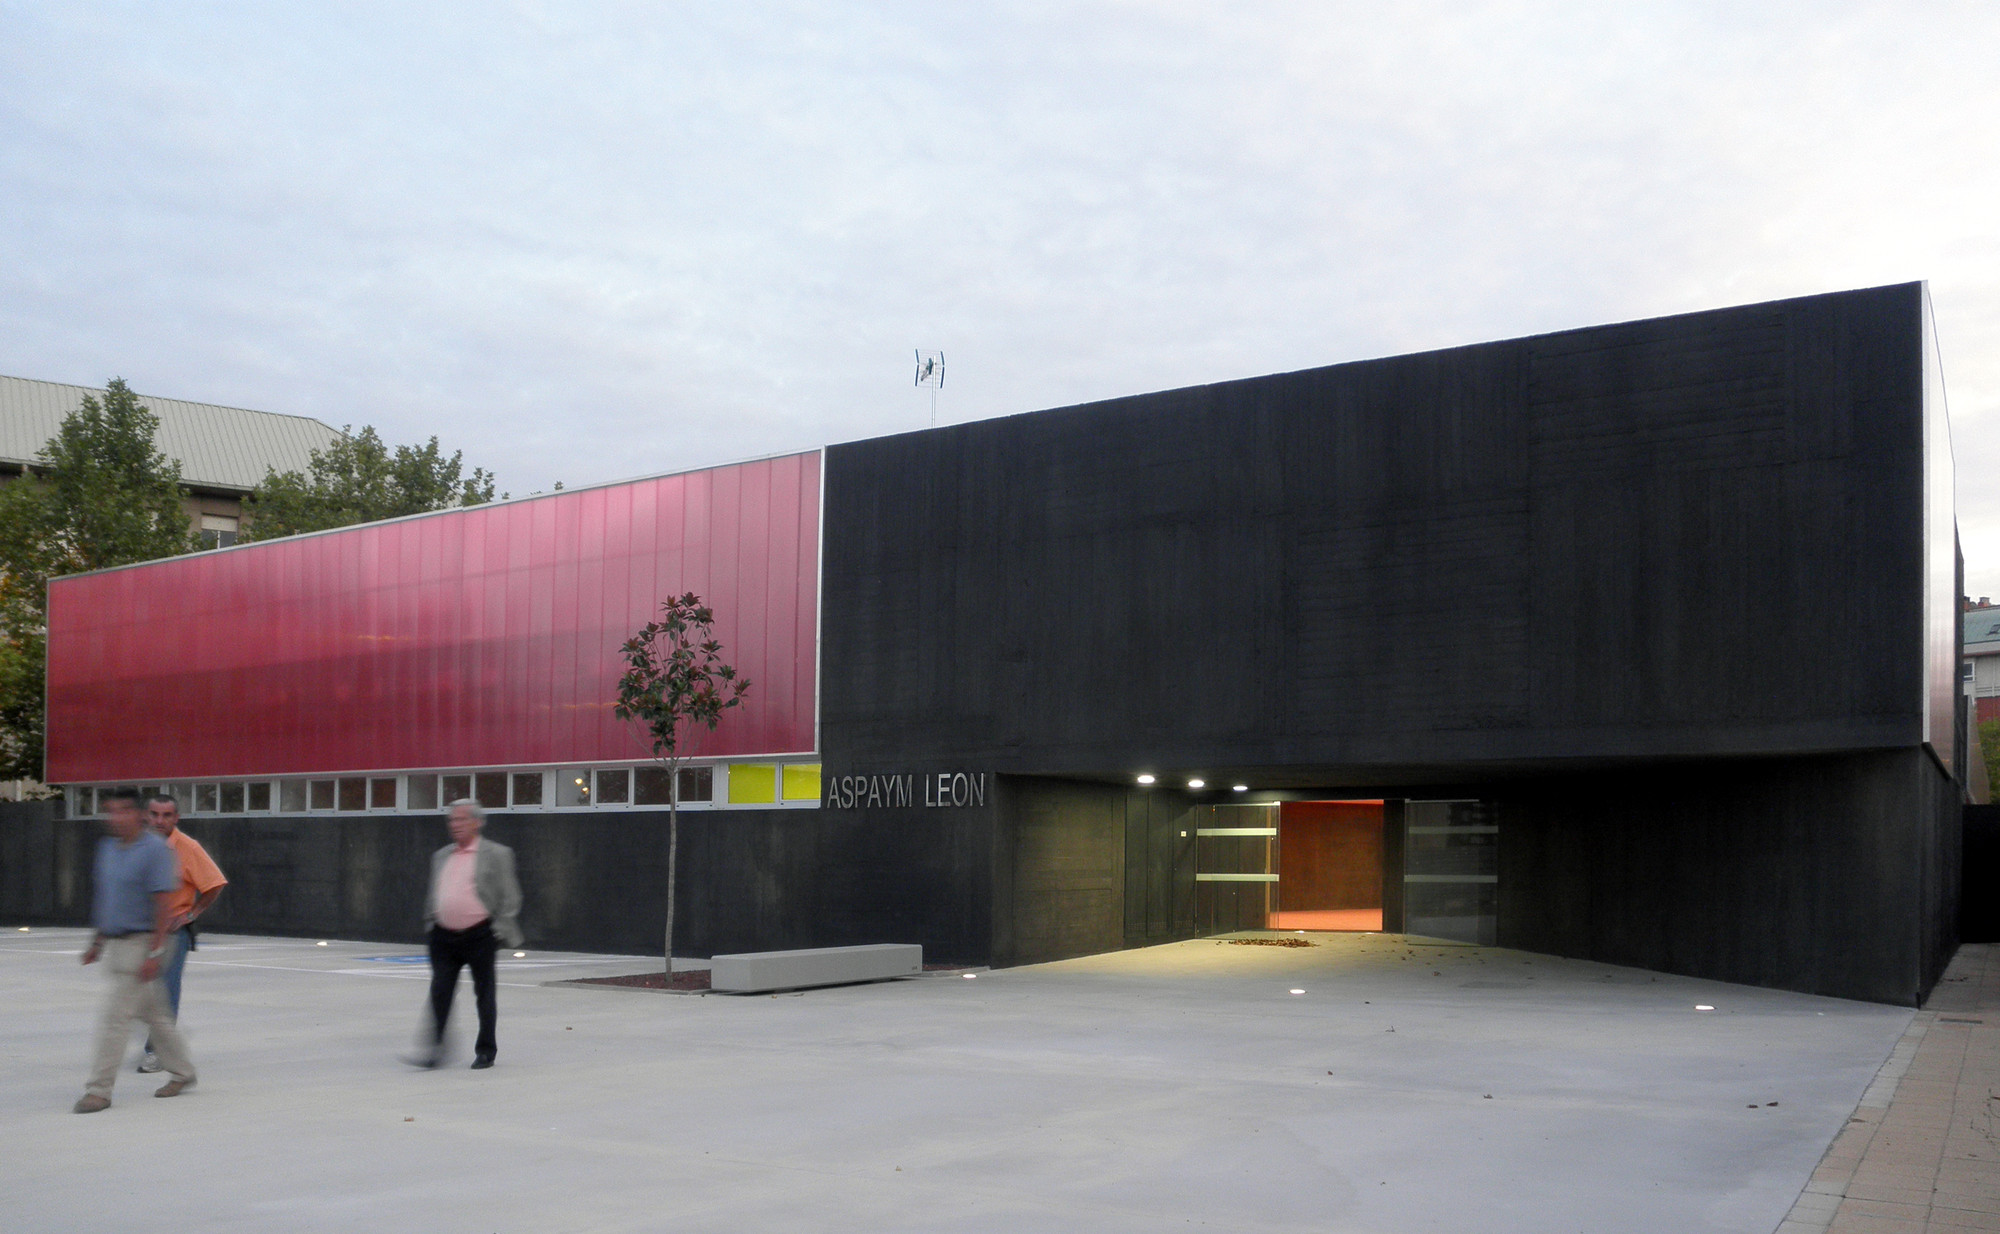 ASPAYM Center for persons with disabilities / Amas4arquitectura, Courtesy of Amas4arquitectura